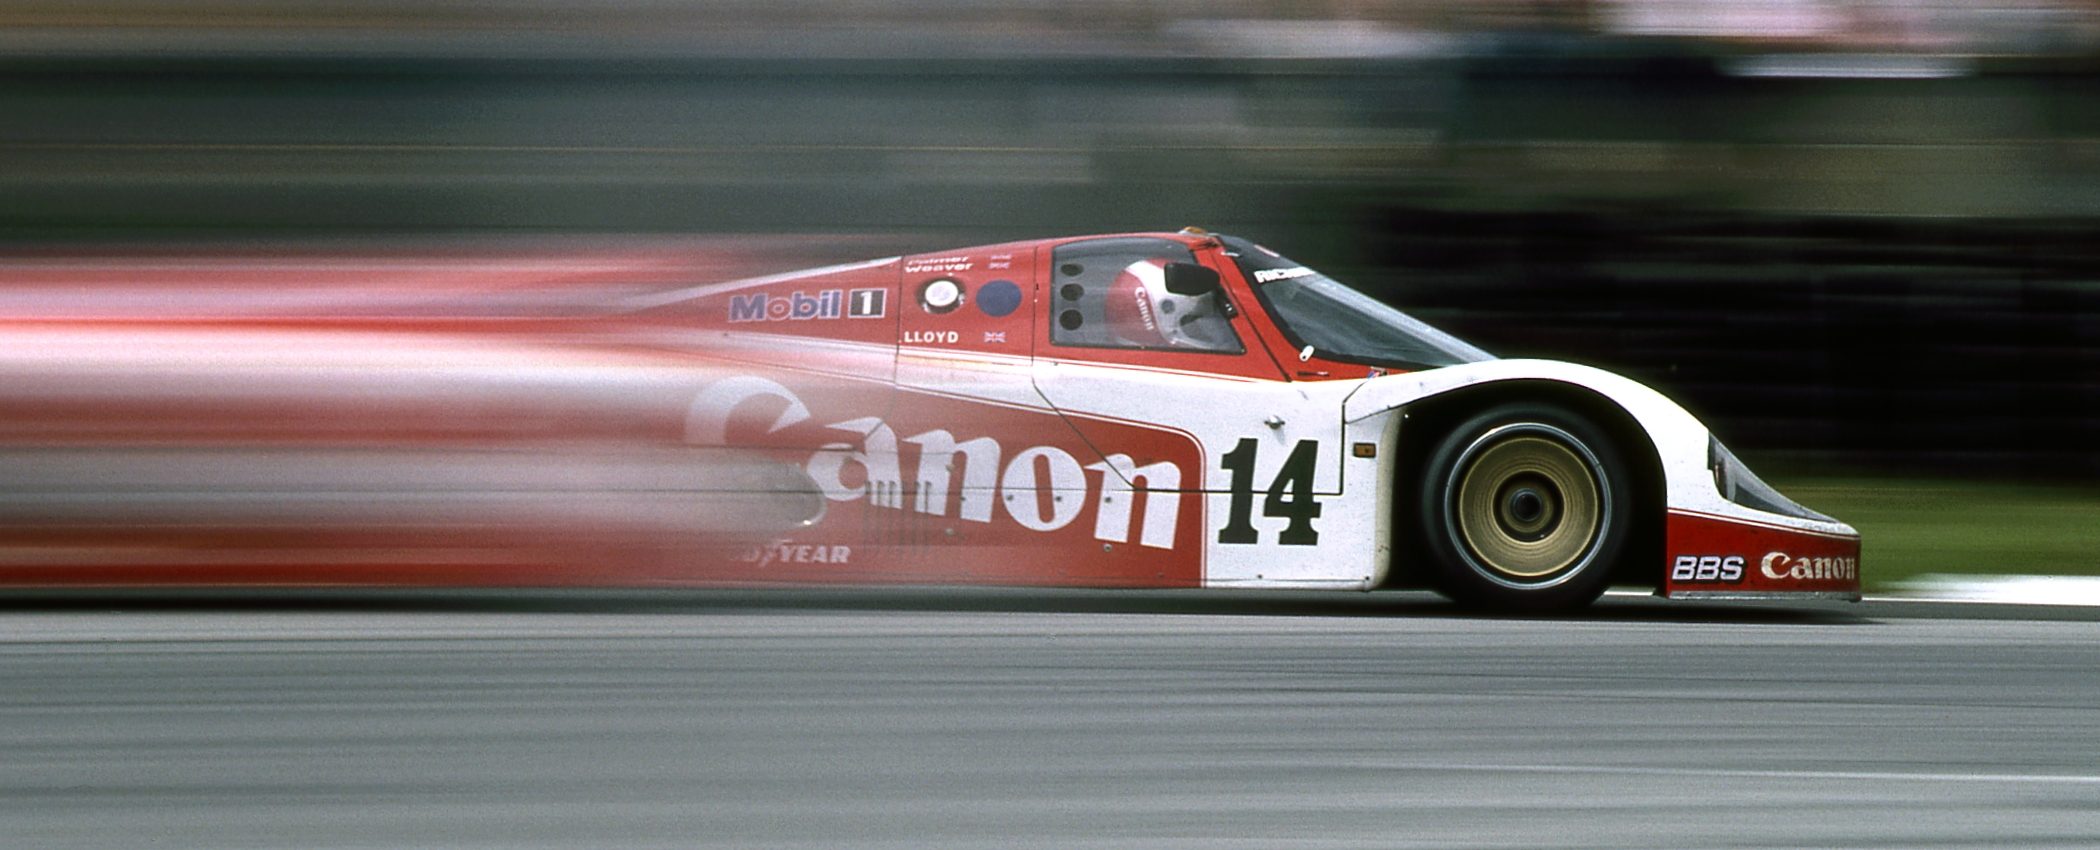 [https://upload.wikimedia.org/wikipedia/commons/7/7 1/LeMans1985Runner-upPorsche956.jpg]